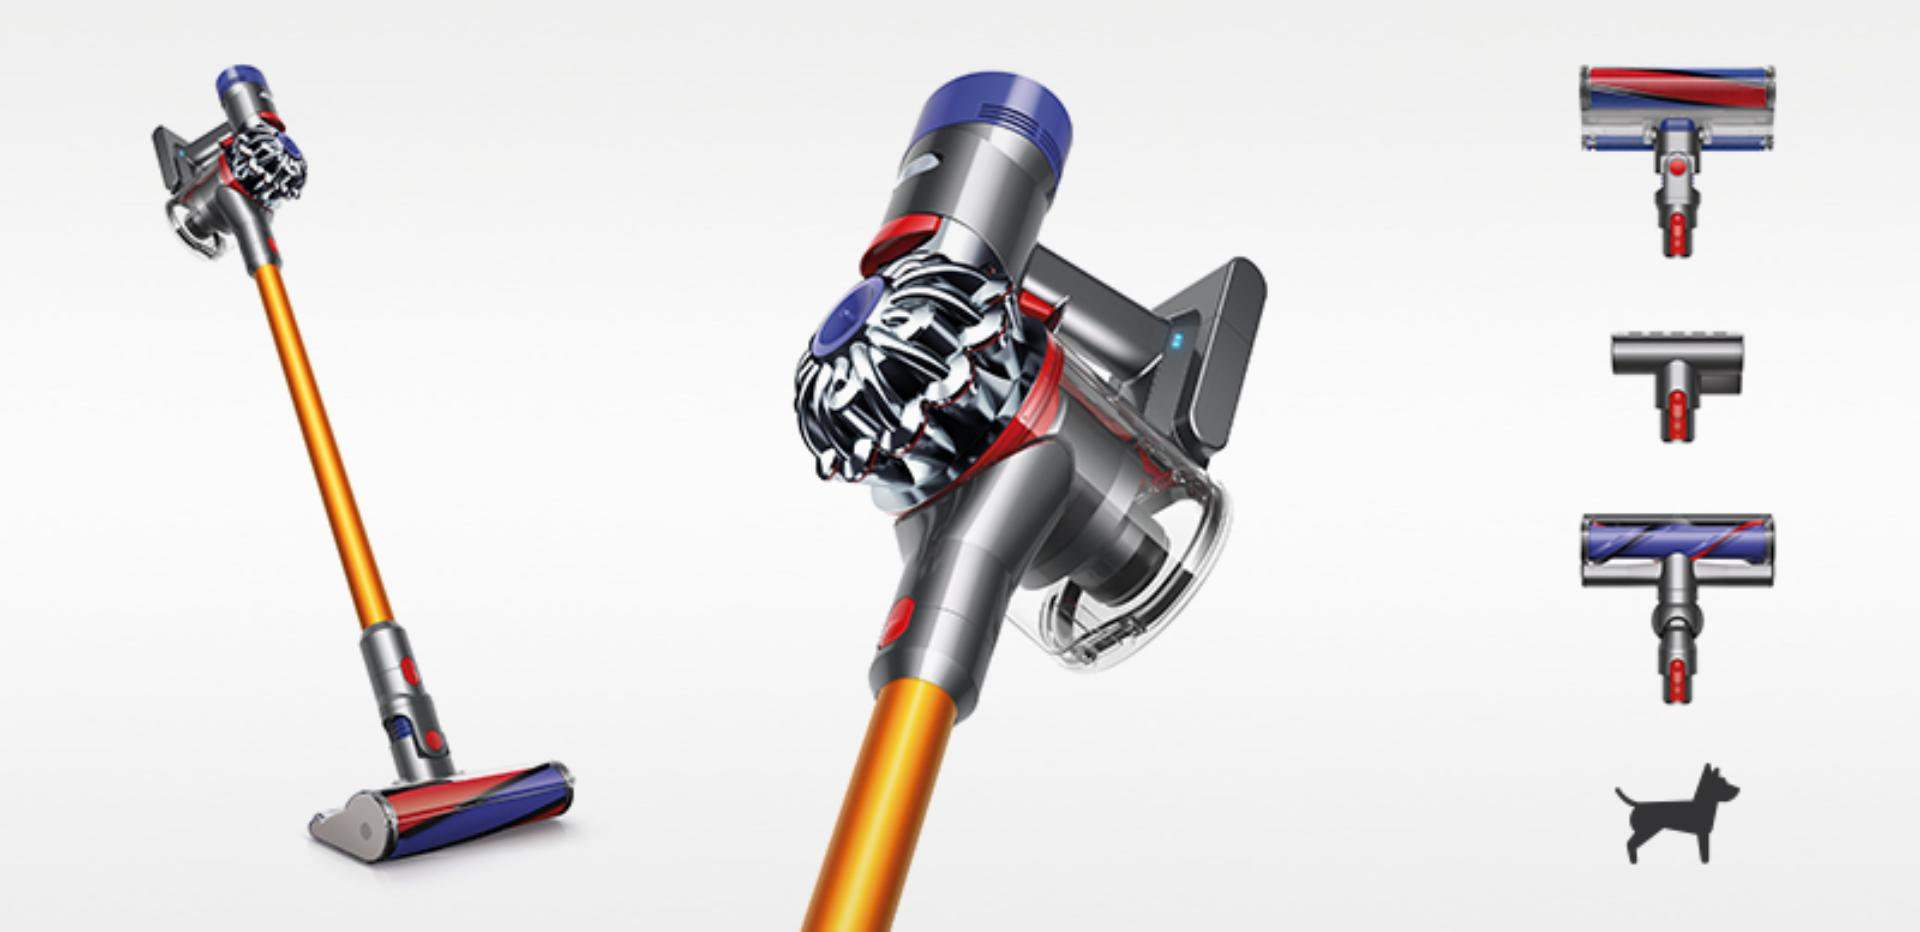 Image showing Dyson V8 Absolute